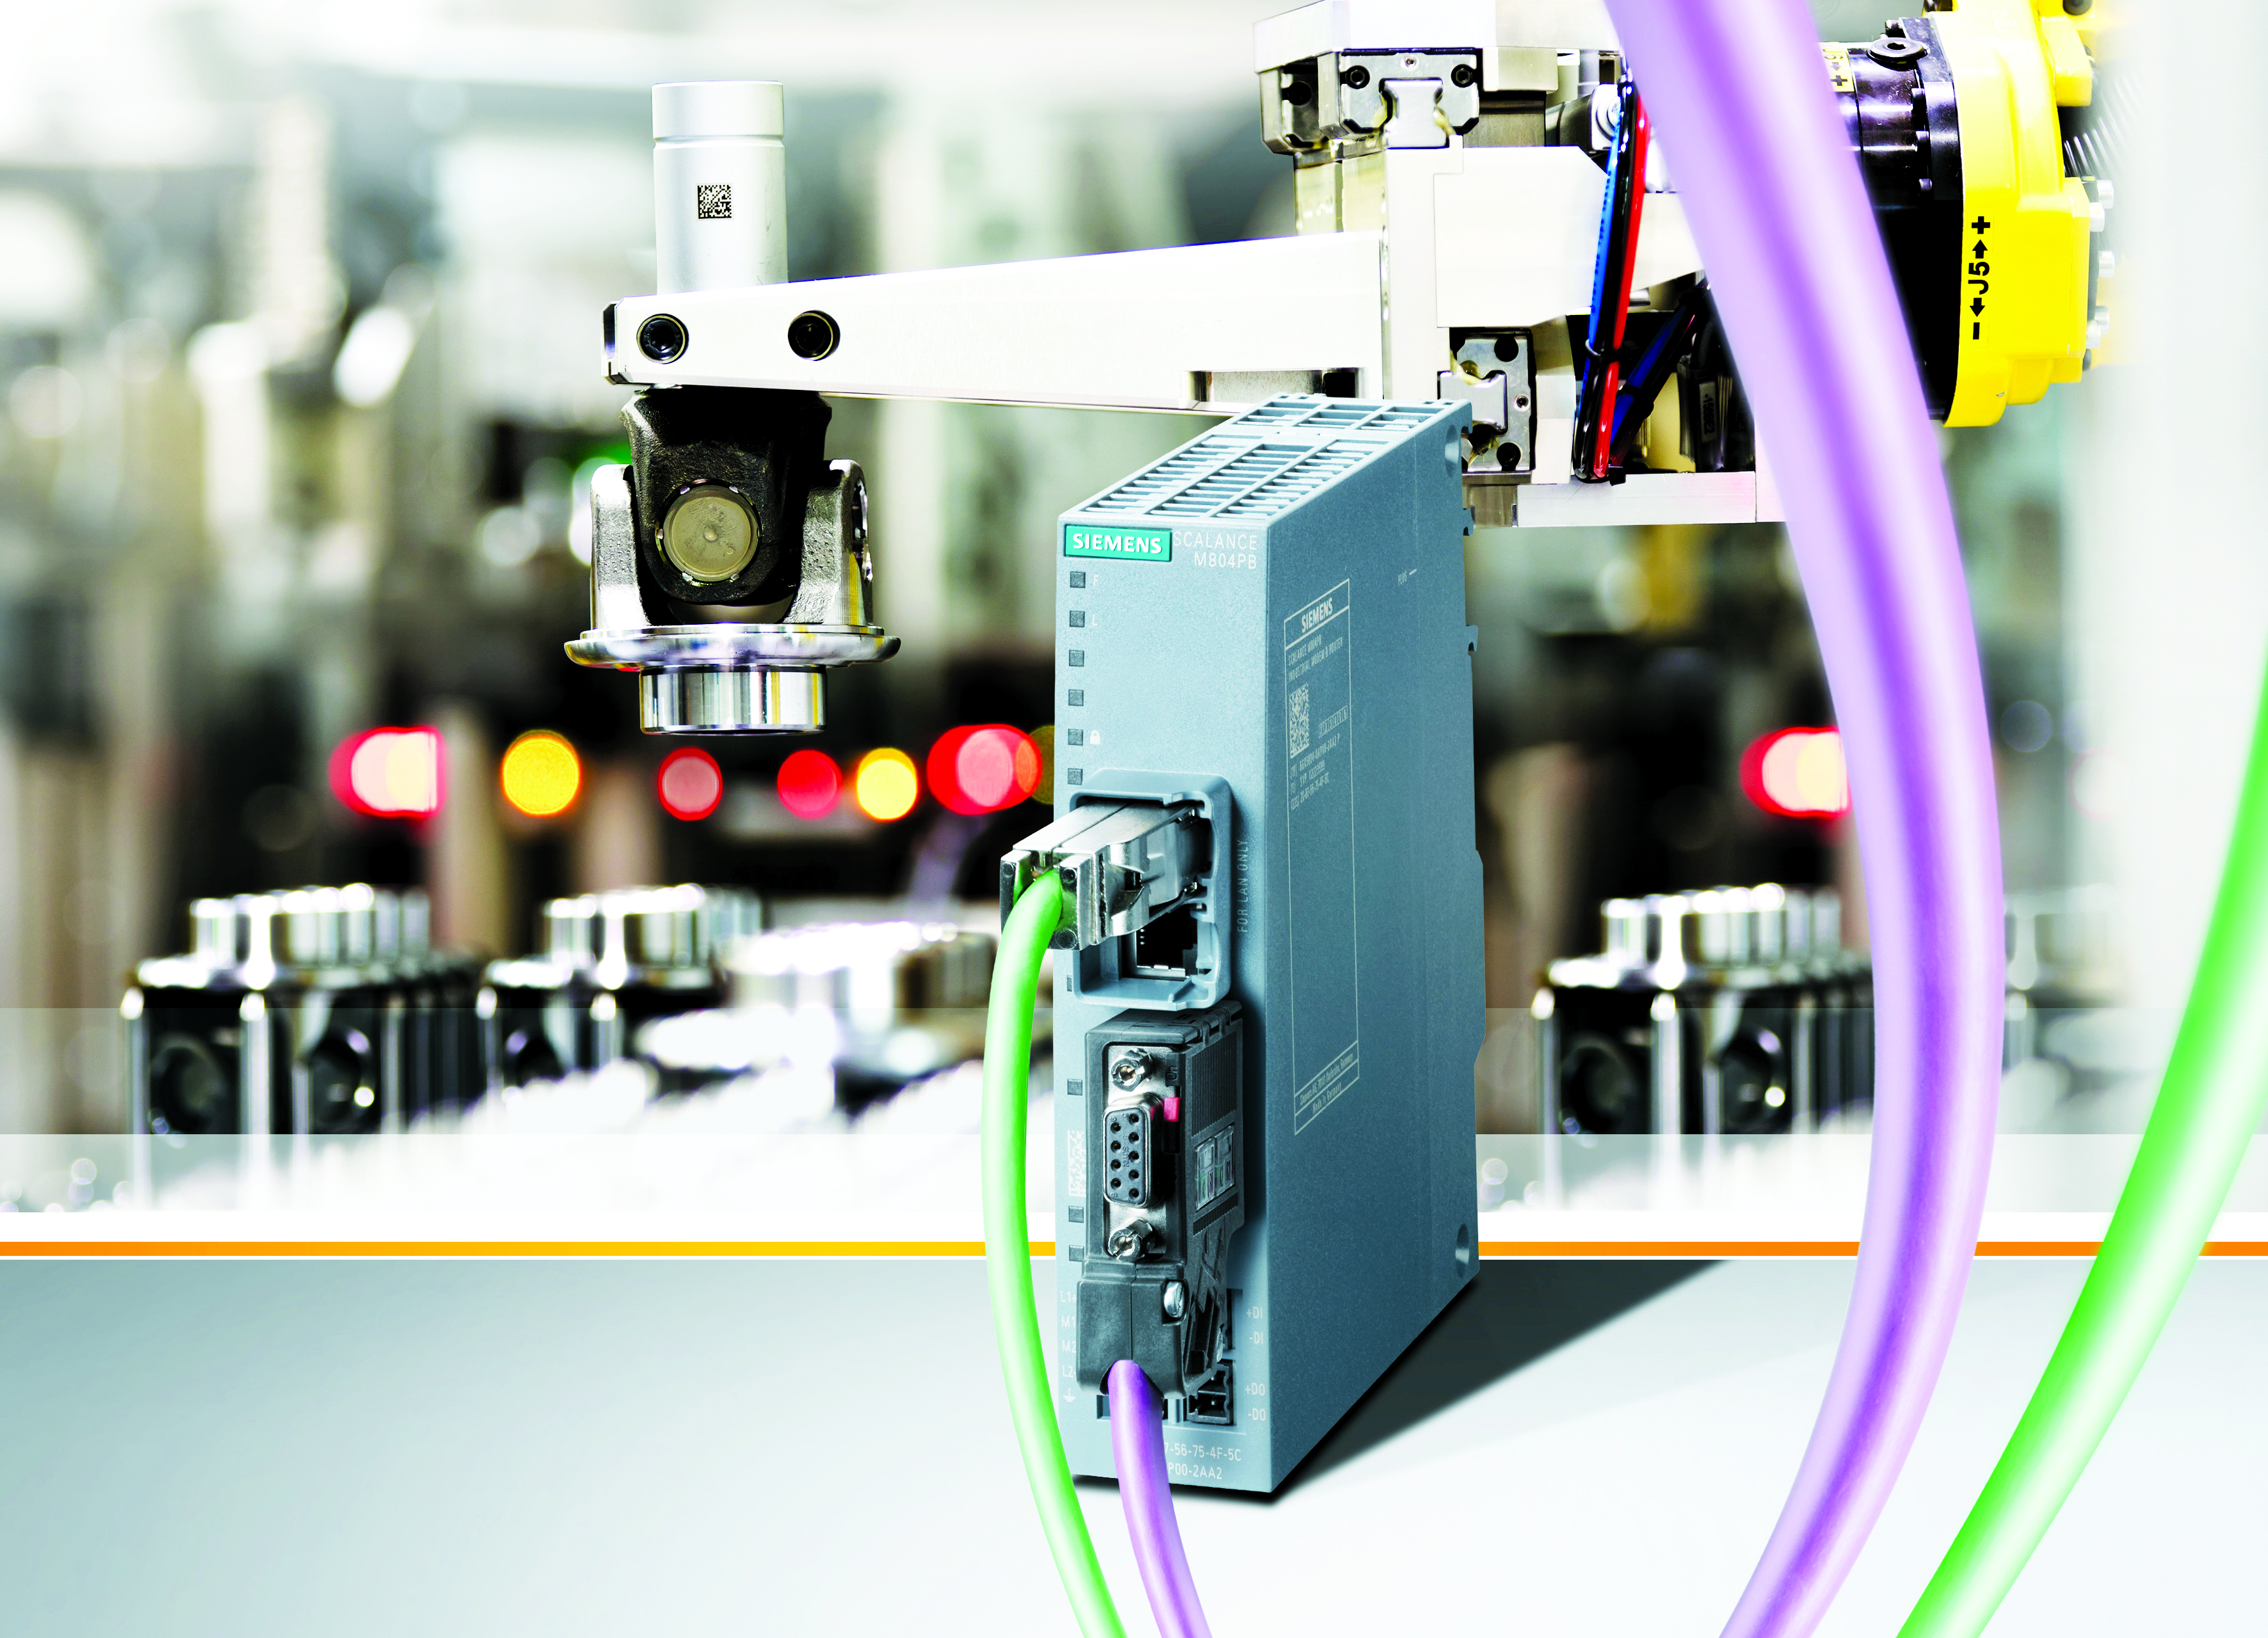 Siemens is extending its portfolio of industrial routers with the Scalance M804PB